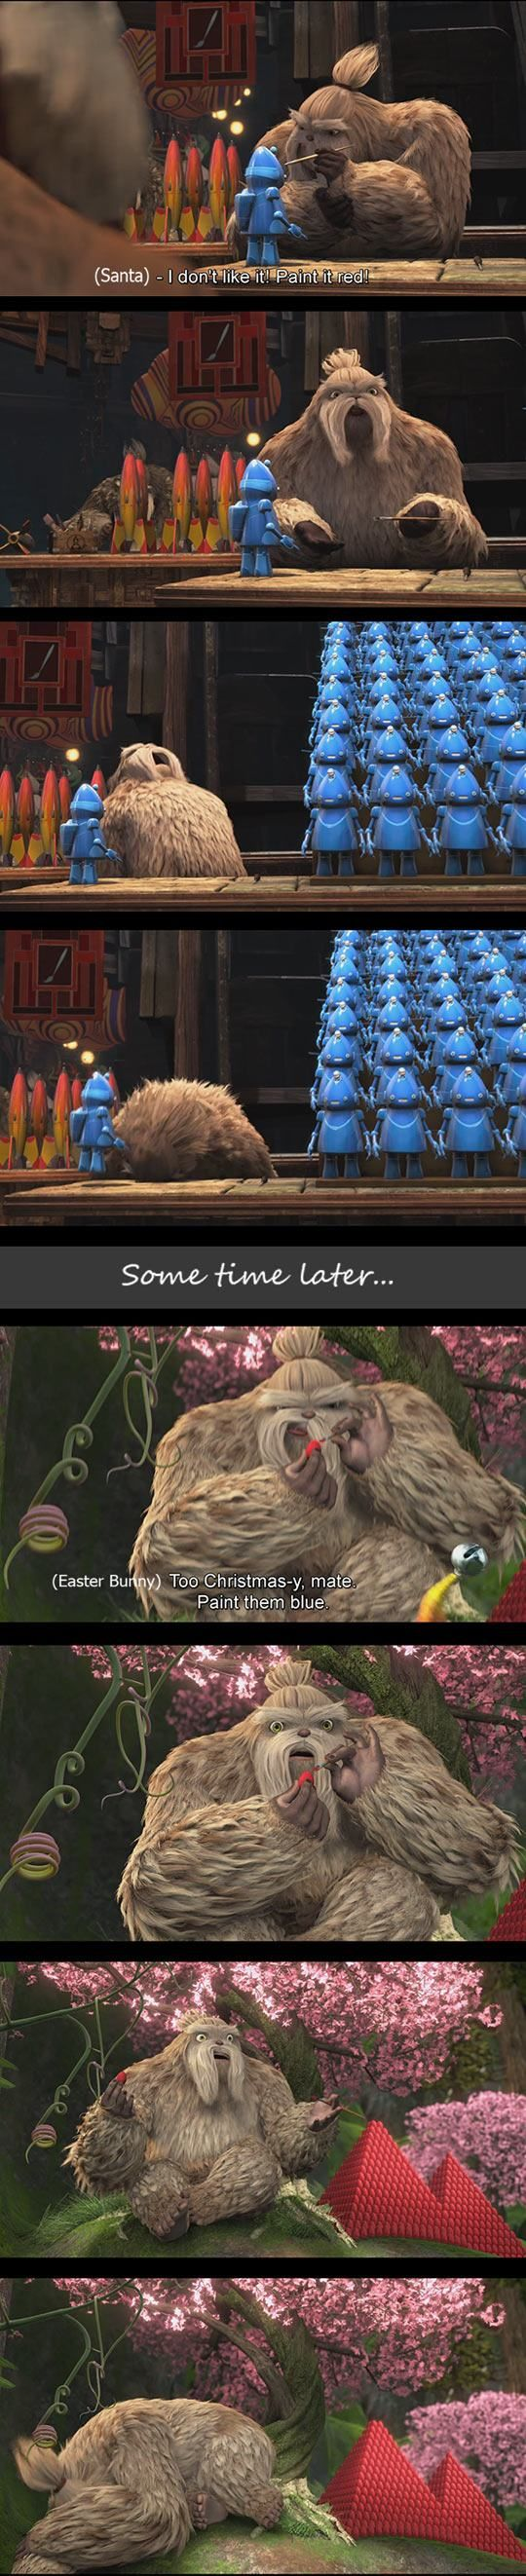 Rise of the Guardians funny meme | I loved these two scenes from the movie! gotta feel for the yeti